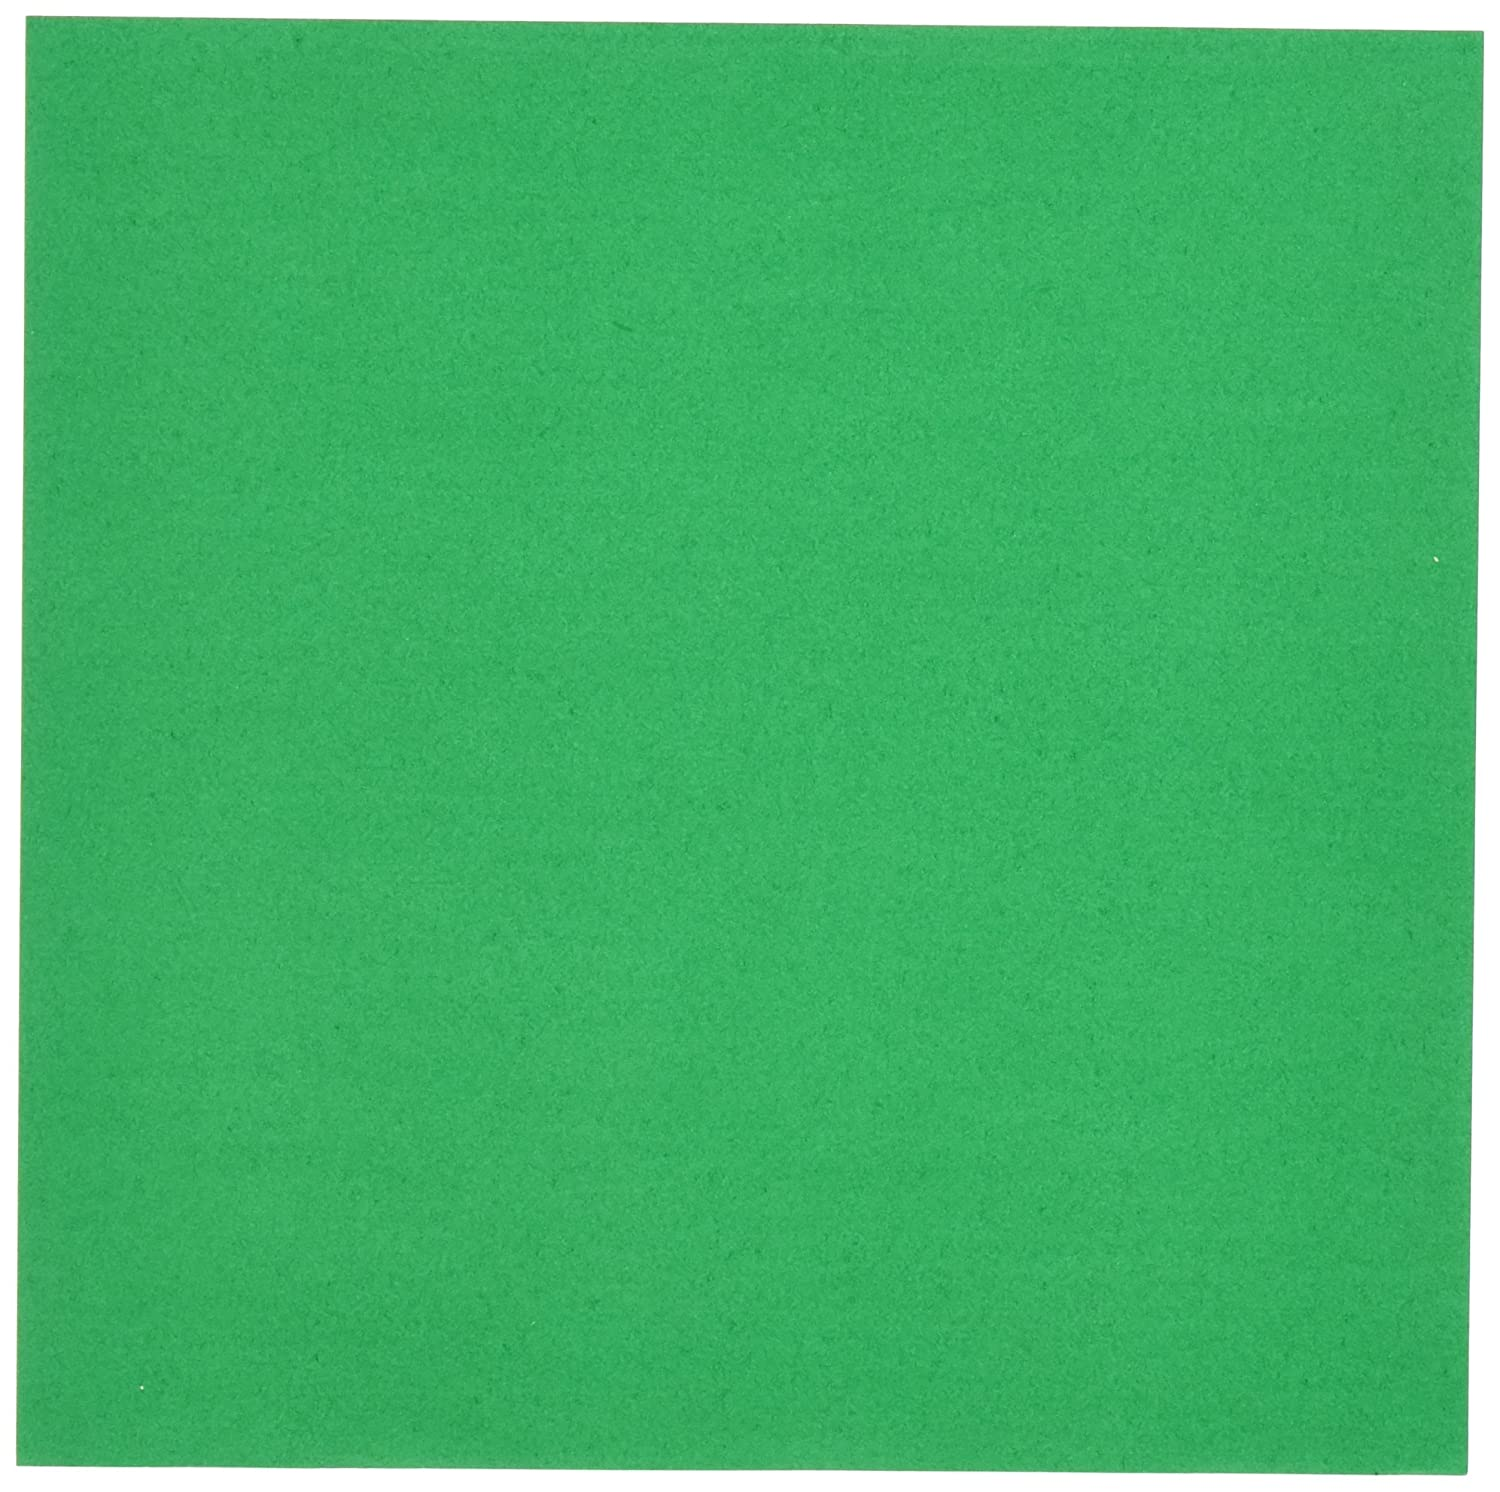 Aitoh OG-GR Origami Paper, 5.875-Inch by 5.875-Inch, Green, 50-Pack Notions